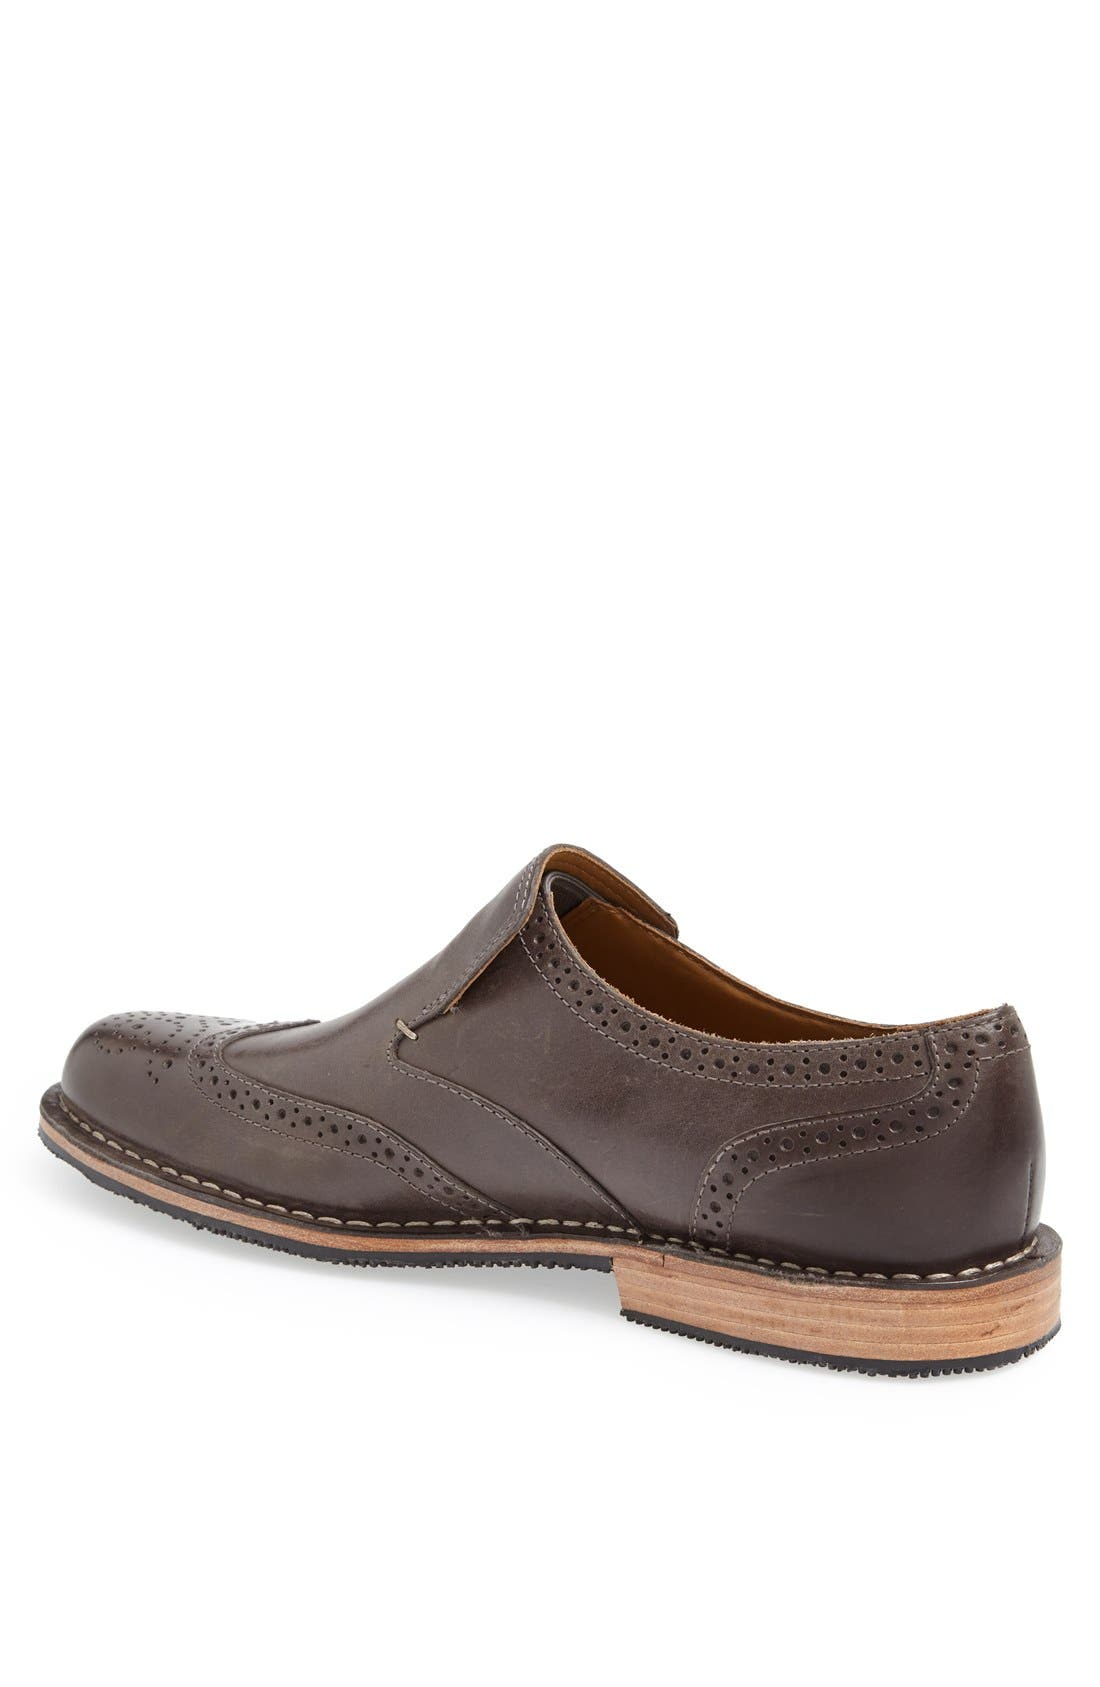 Alternate Image 2  - Sebago 'Brattle' Venetian Loafer